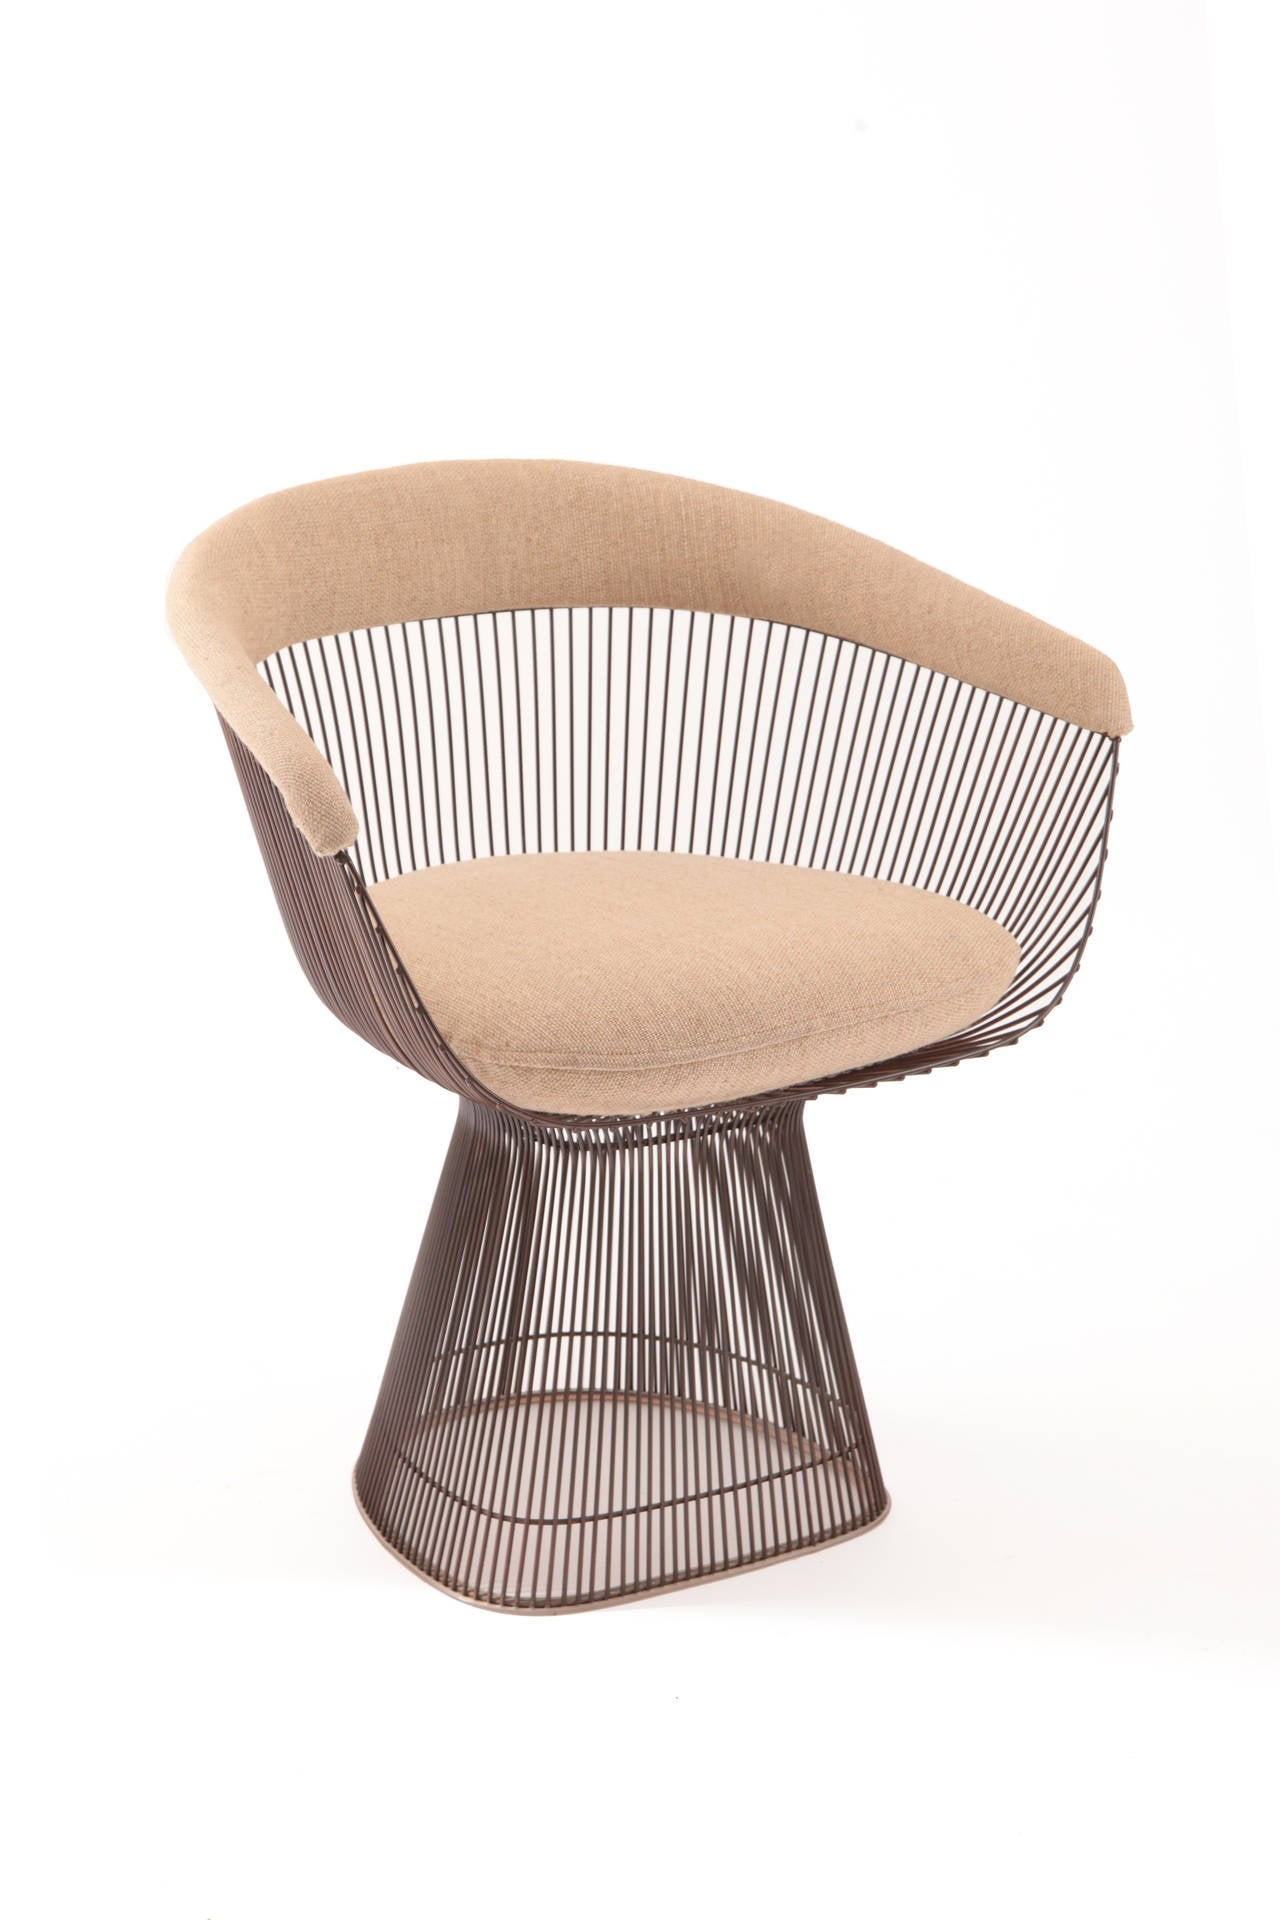 Warren Platner Knoll Bronze Dining Table and Chairs at 1stdibs